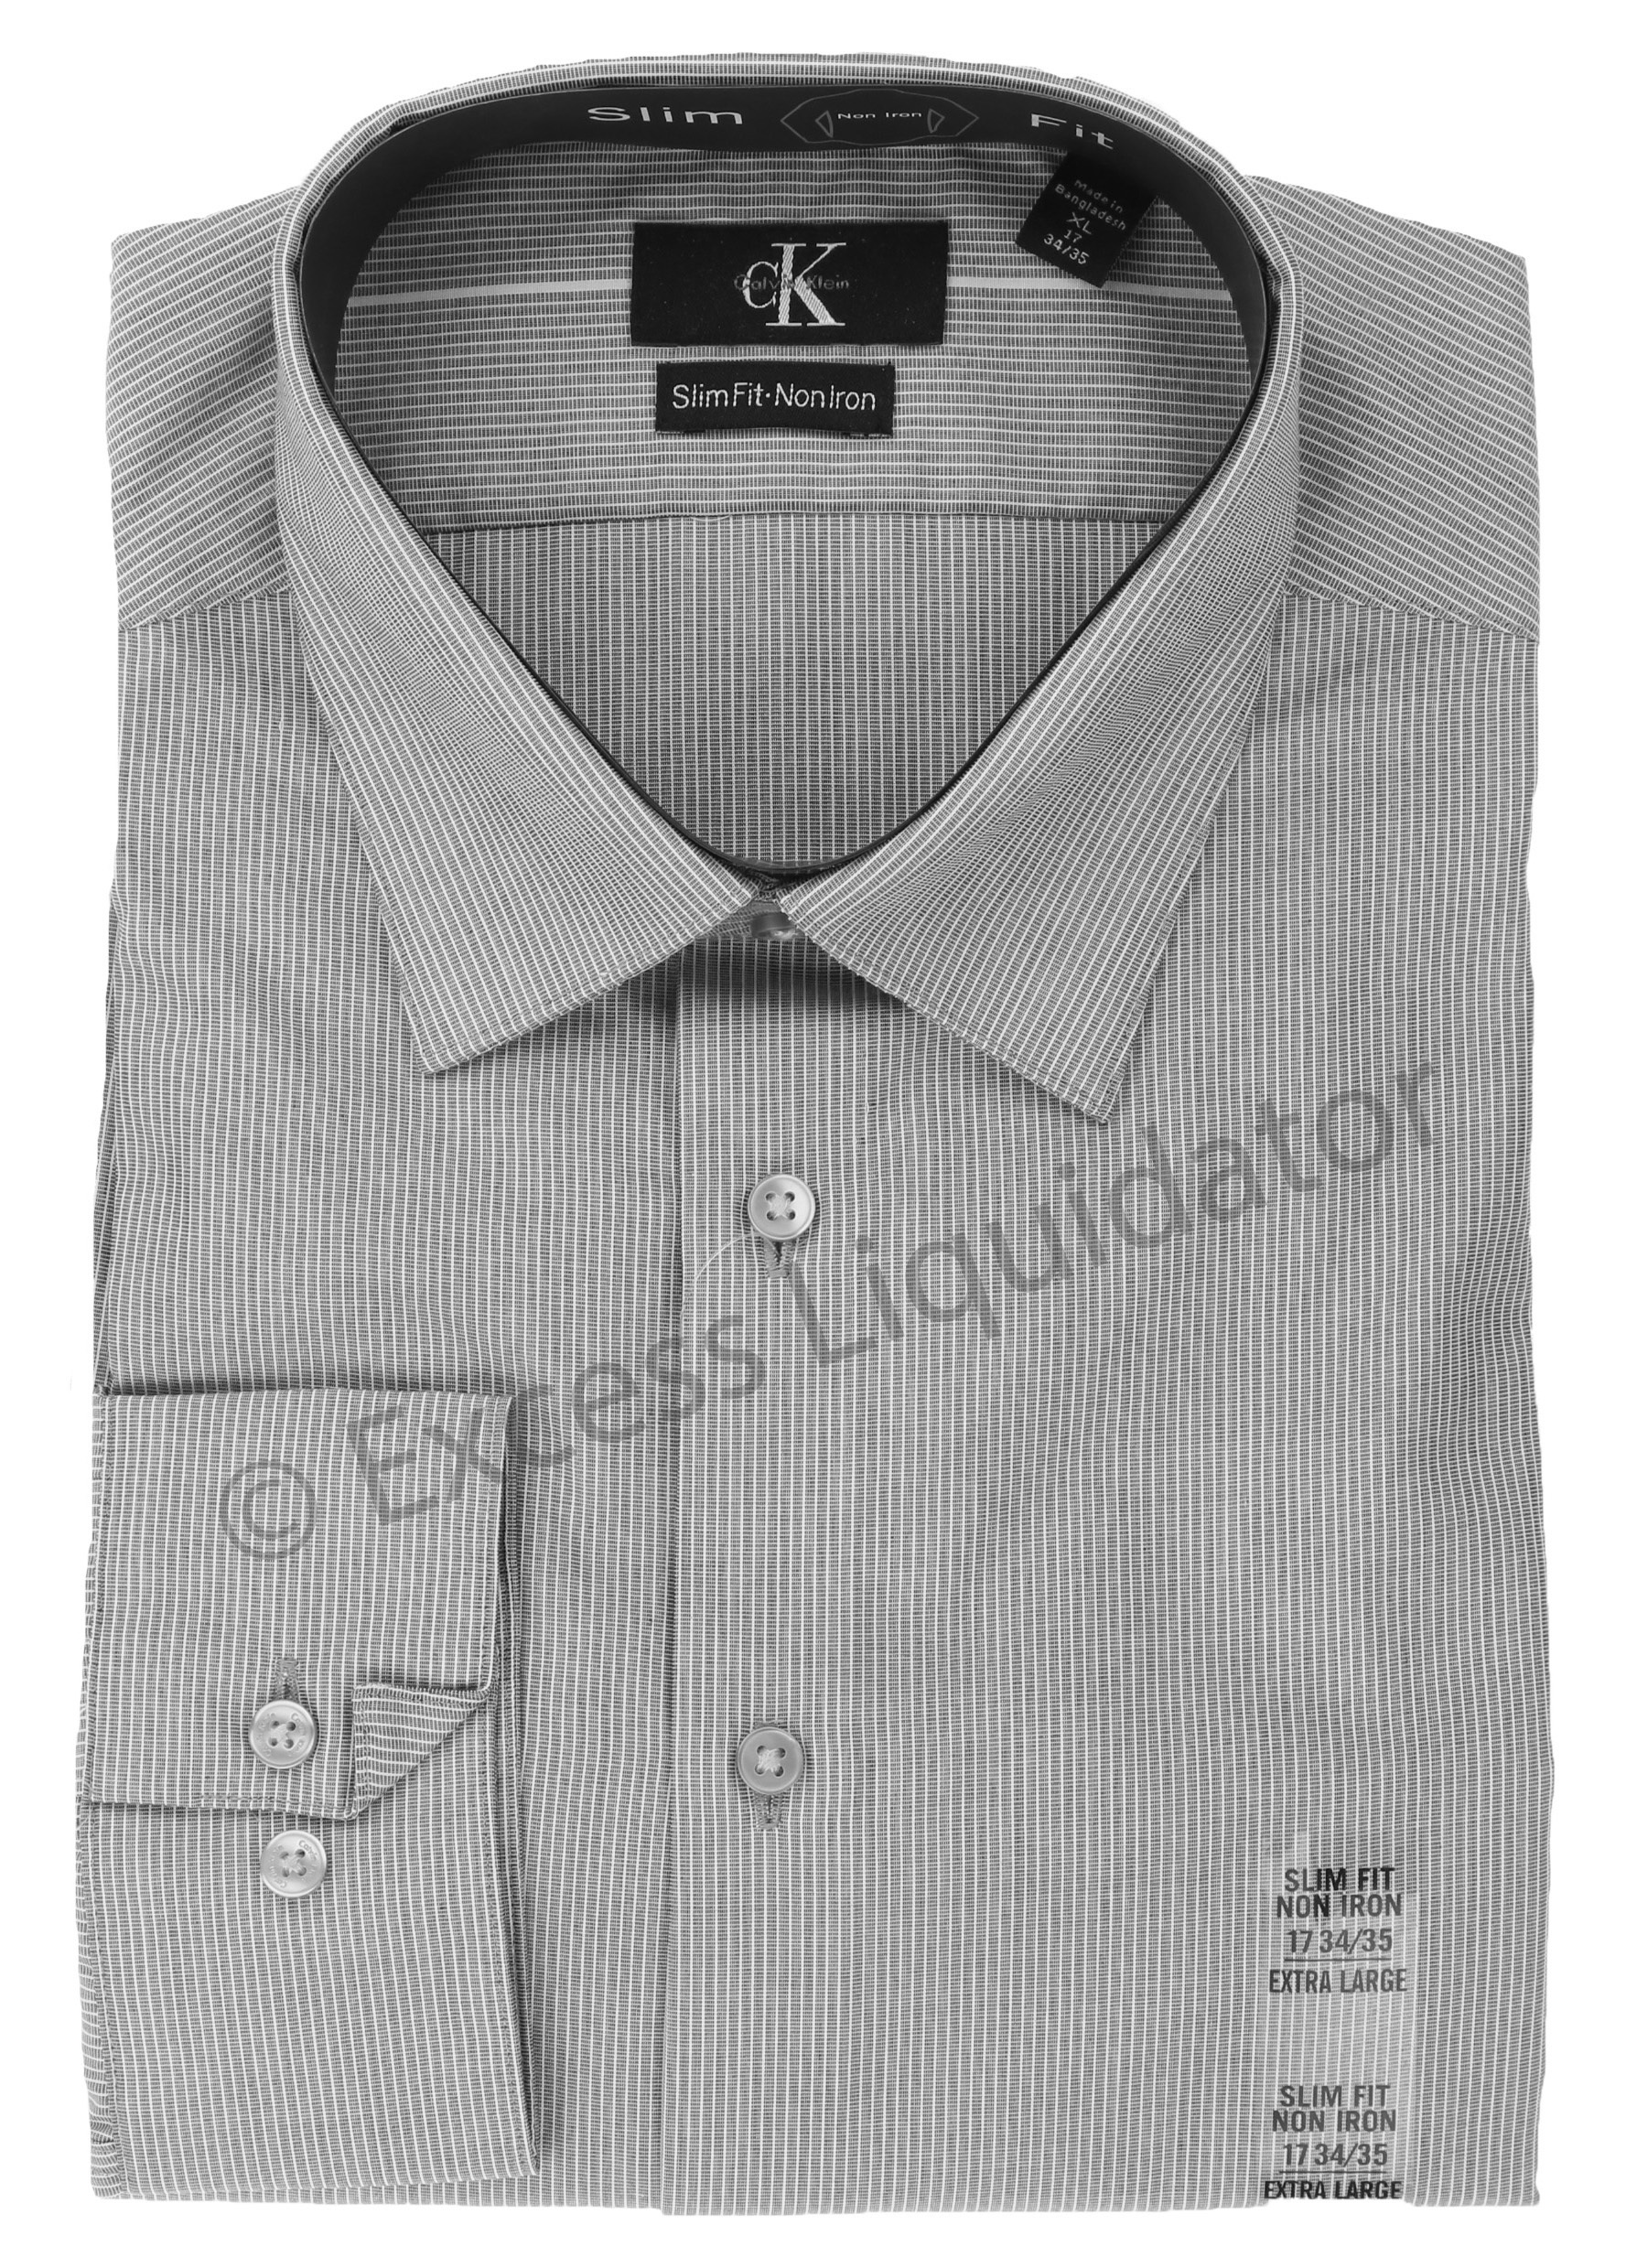 Calvin klein men 39 s slim fit non iron dress shirt ebay for Calvin klein slim fit stretch shirt